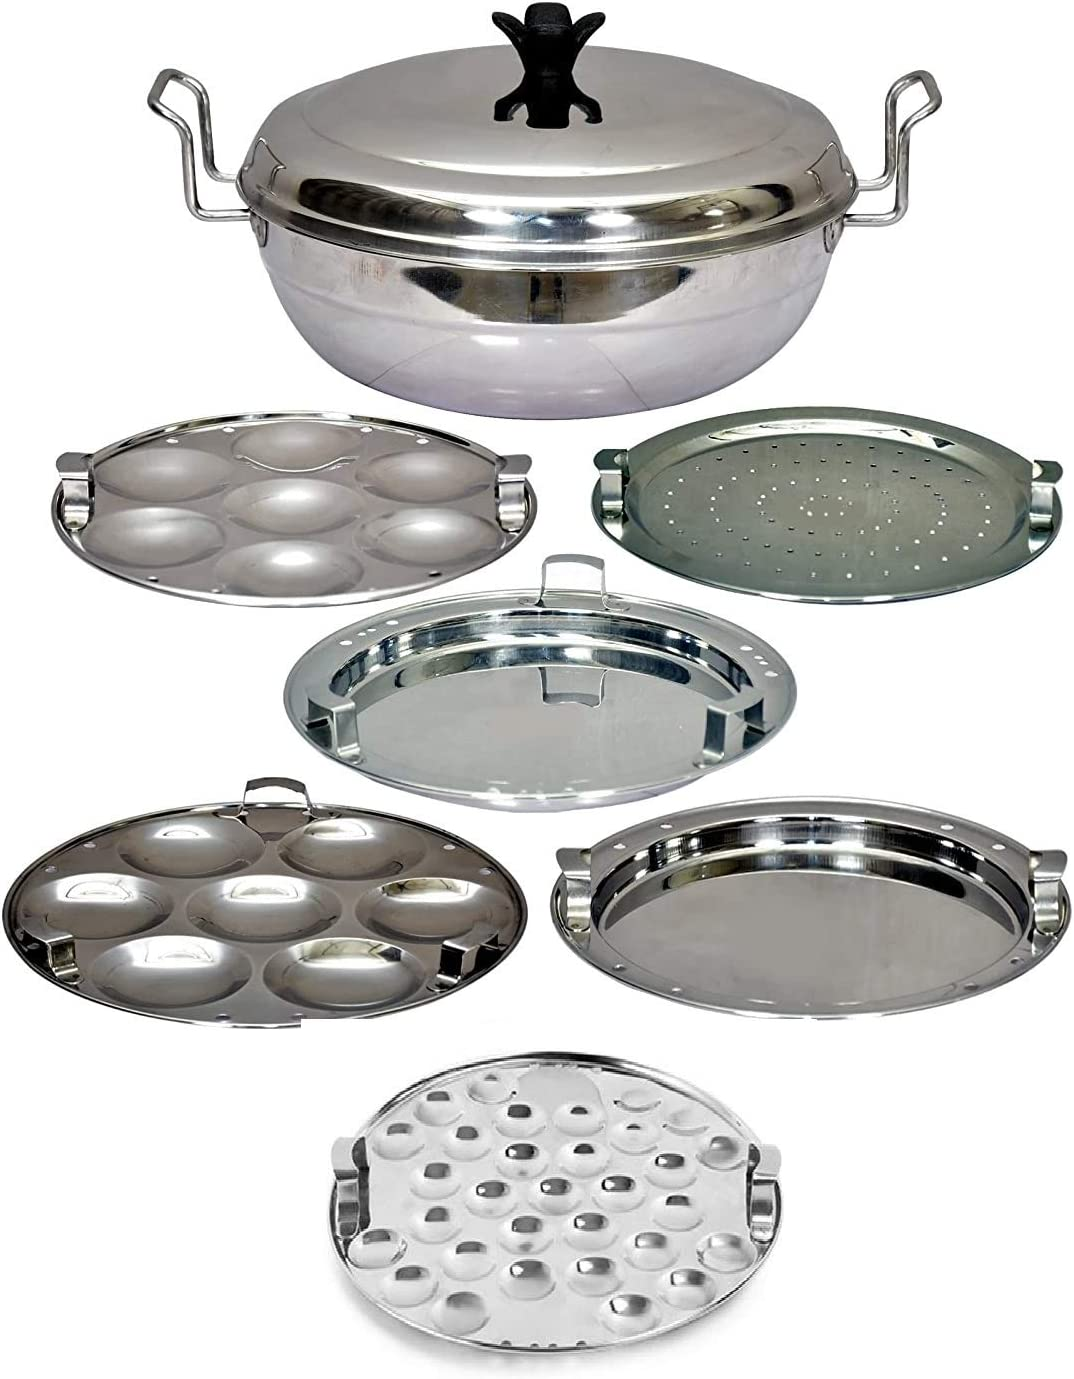 Sandwitch Bottom IDLY Cooker IDLY Maker Multi KADAI Multi KADHAI IDLI Cooker IDLI Maker 5 IN1